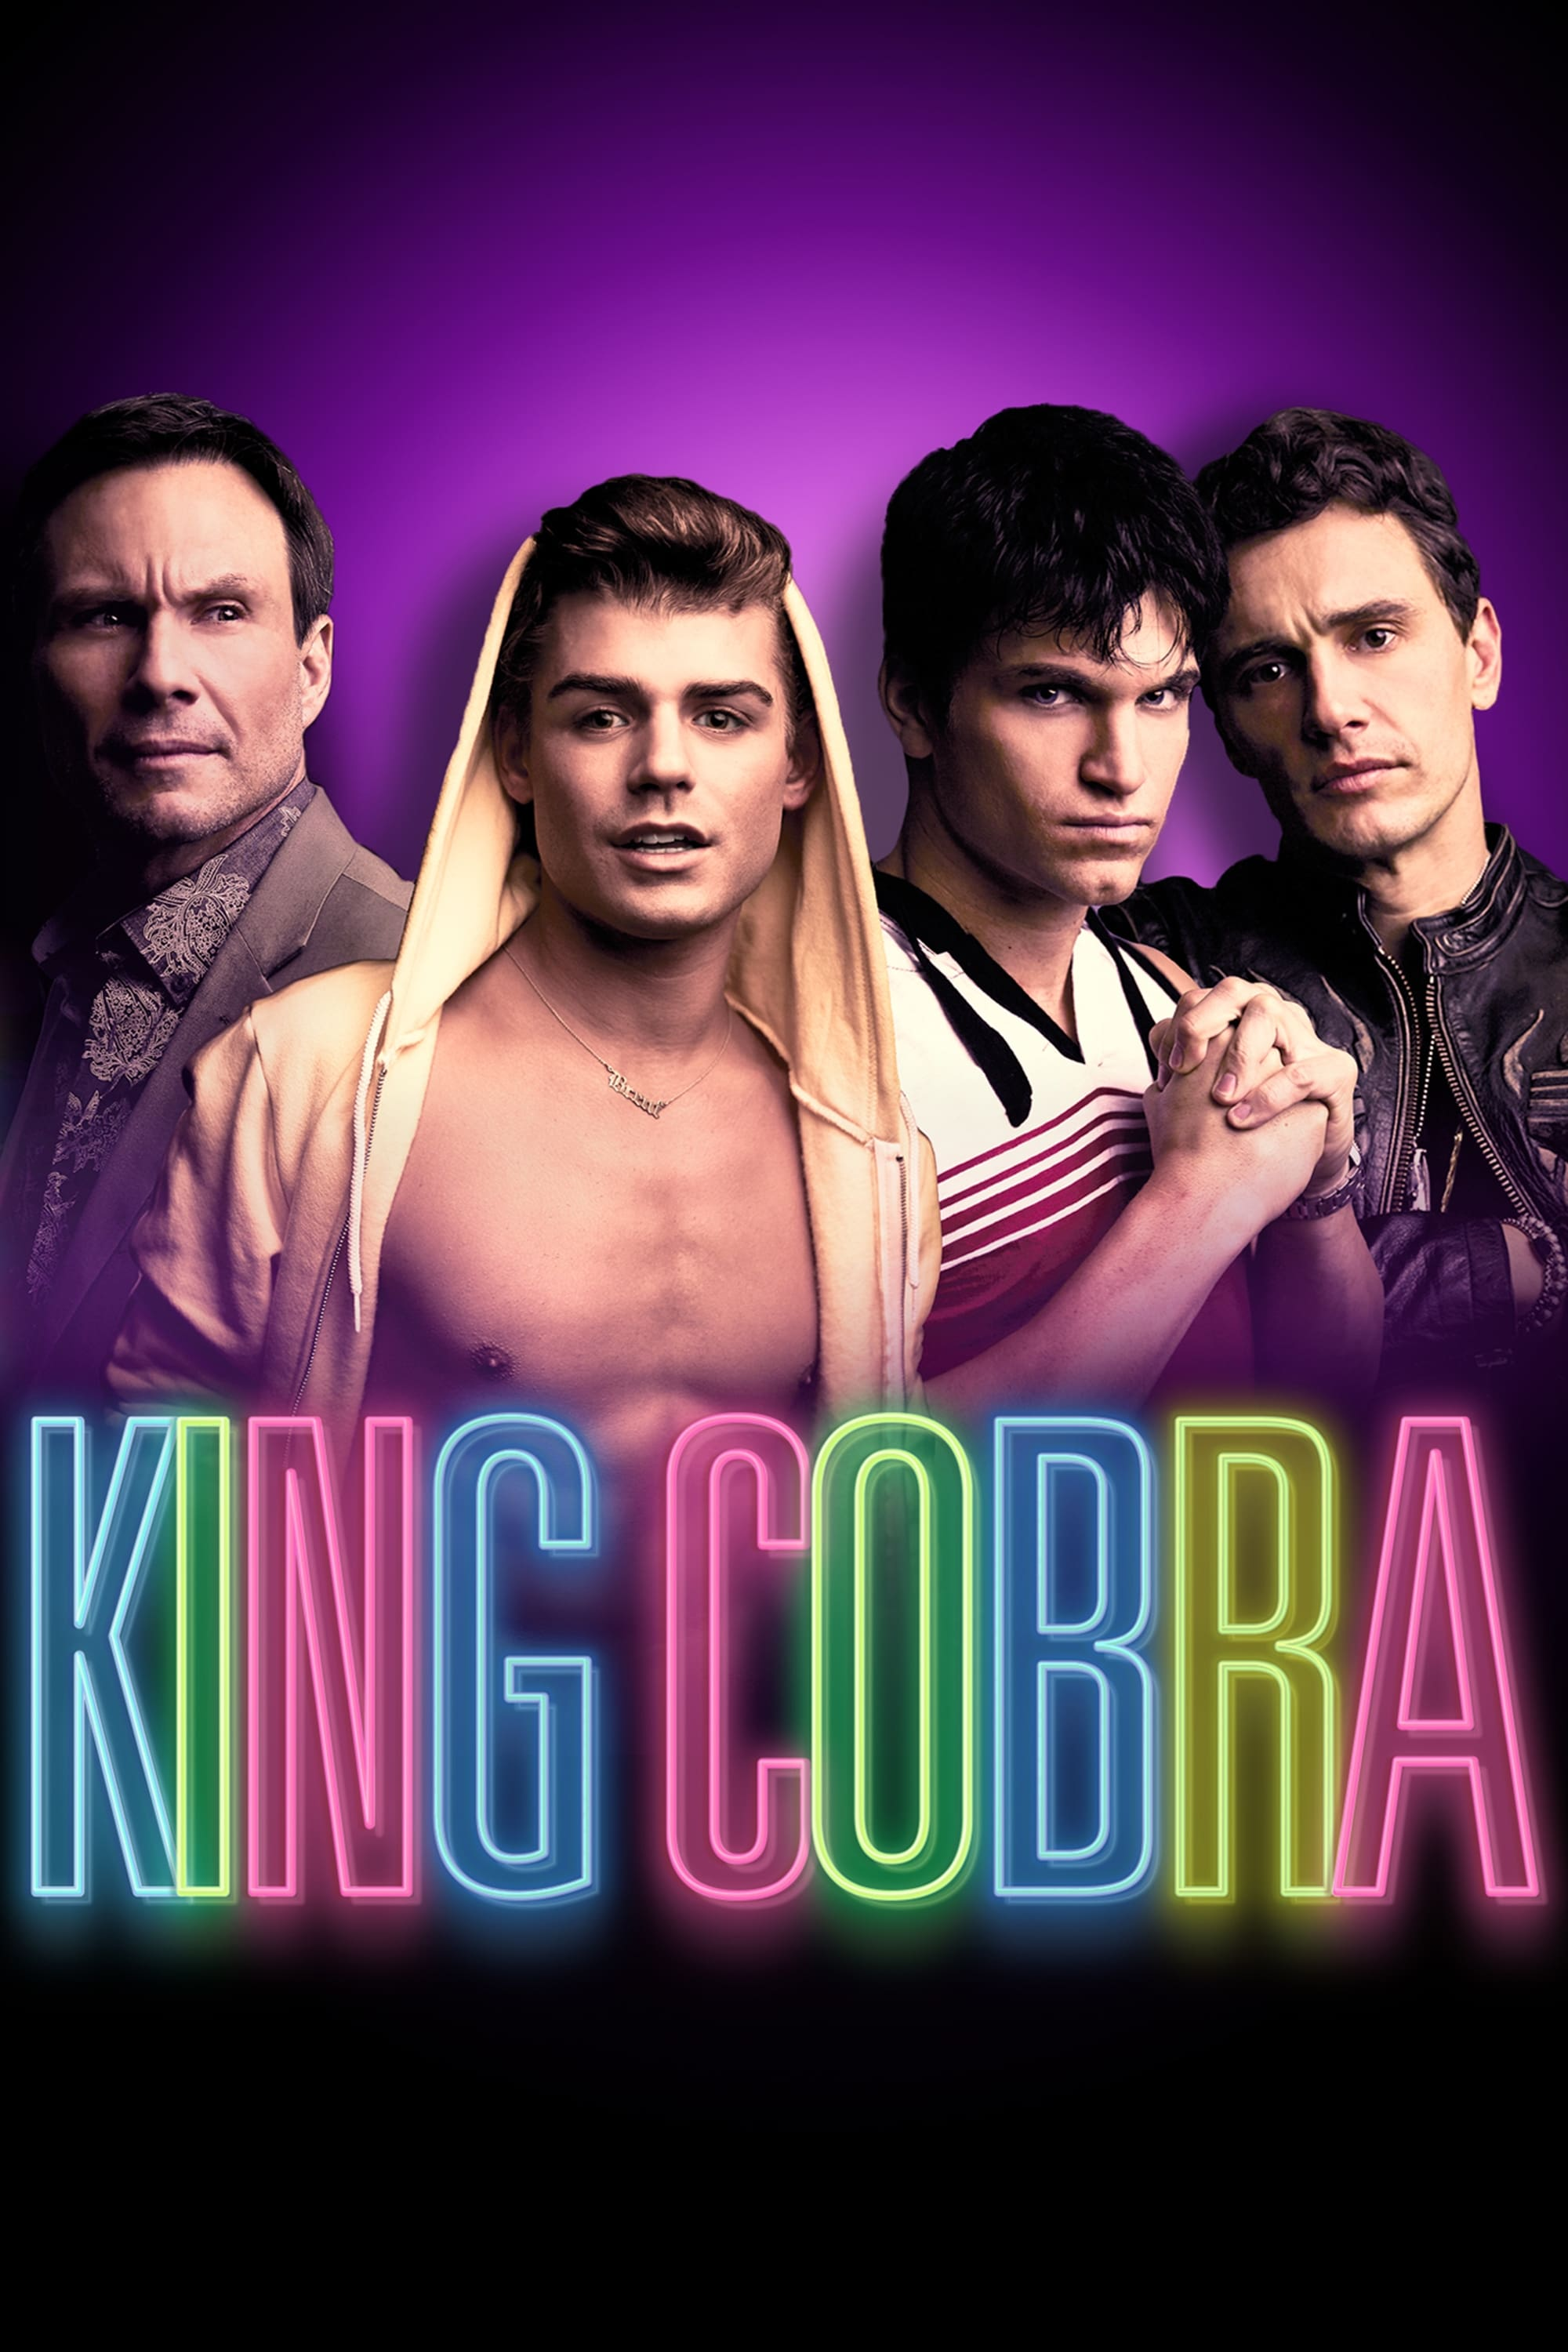 King Cobra Legendado